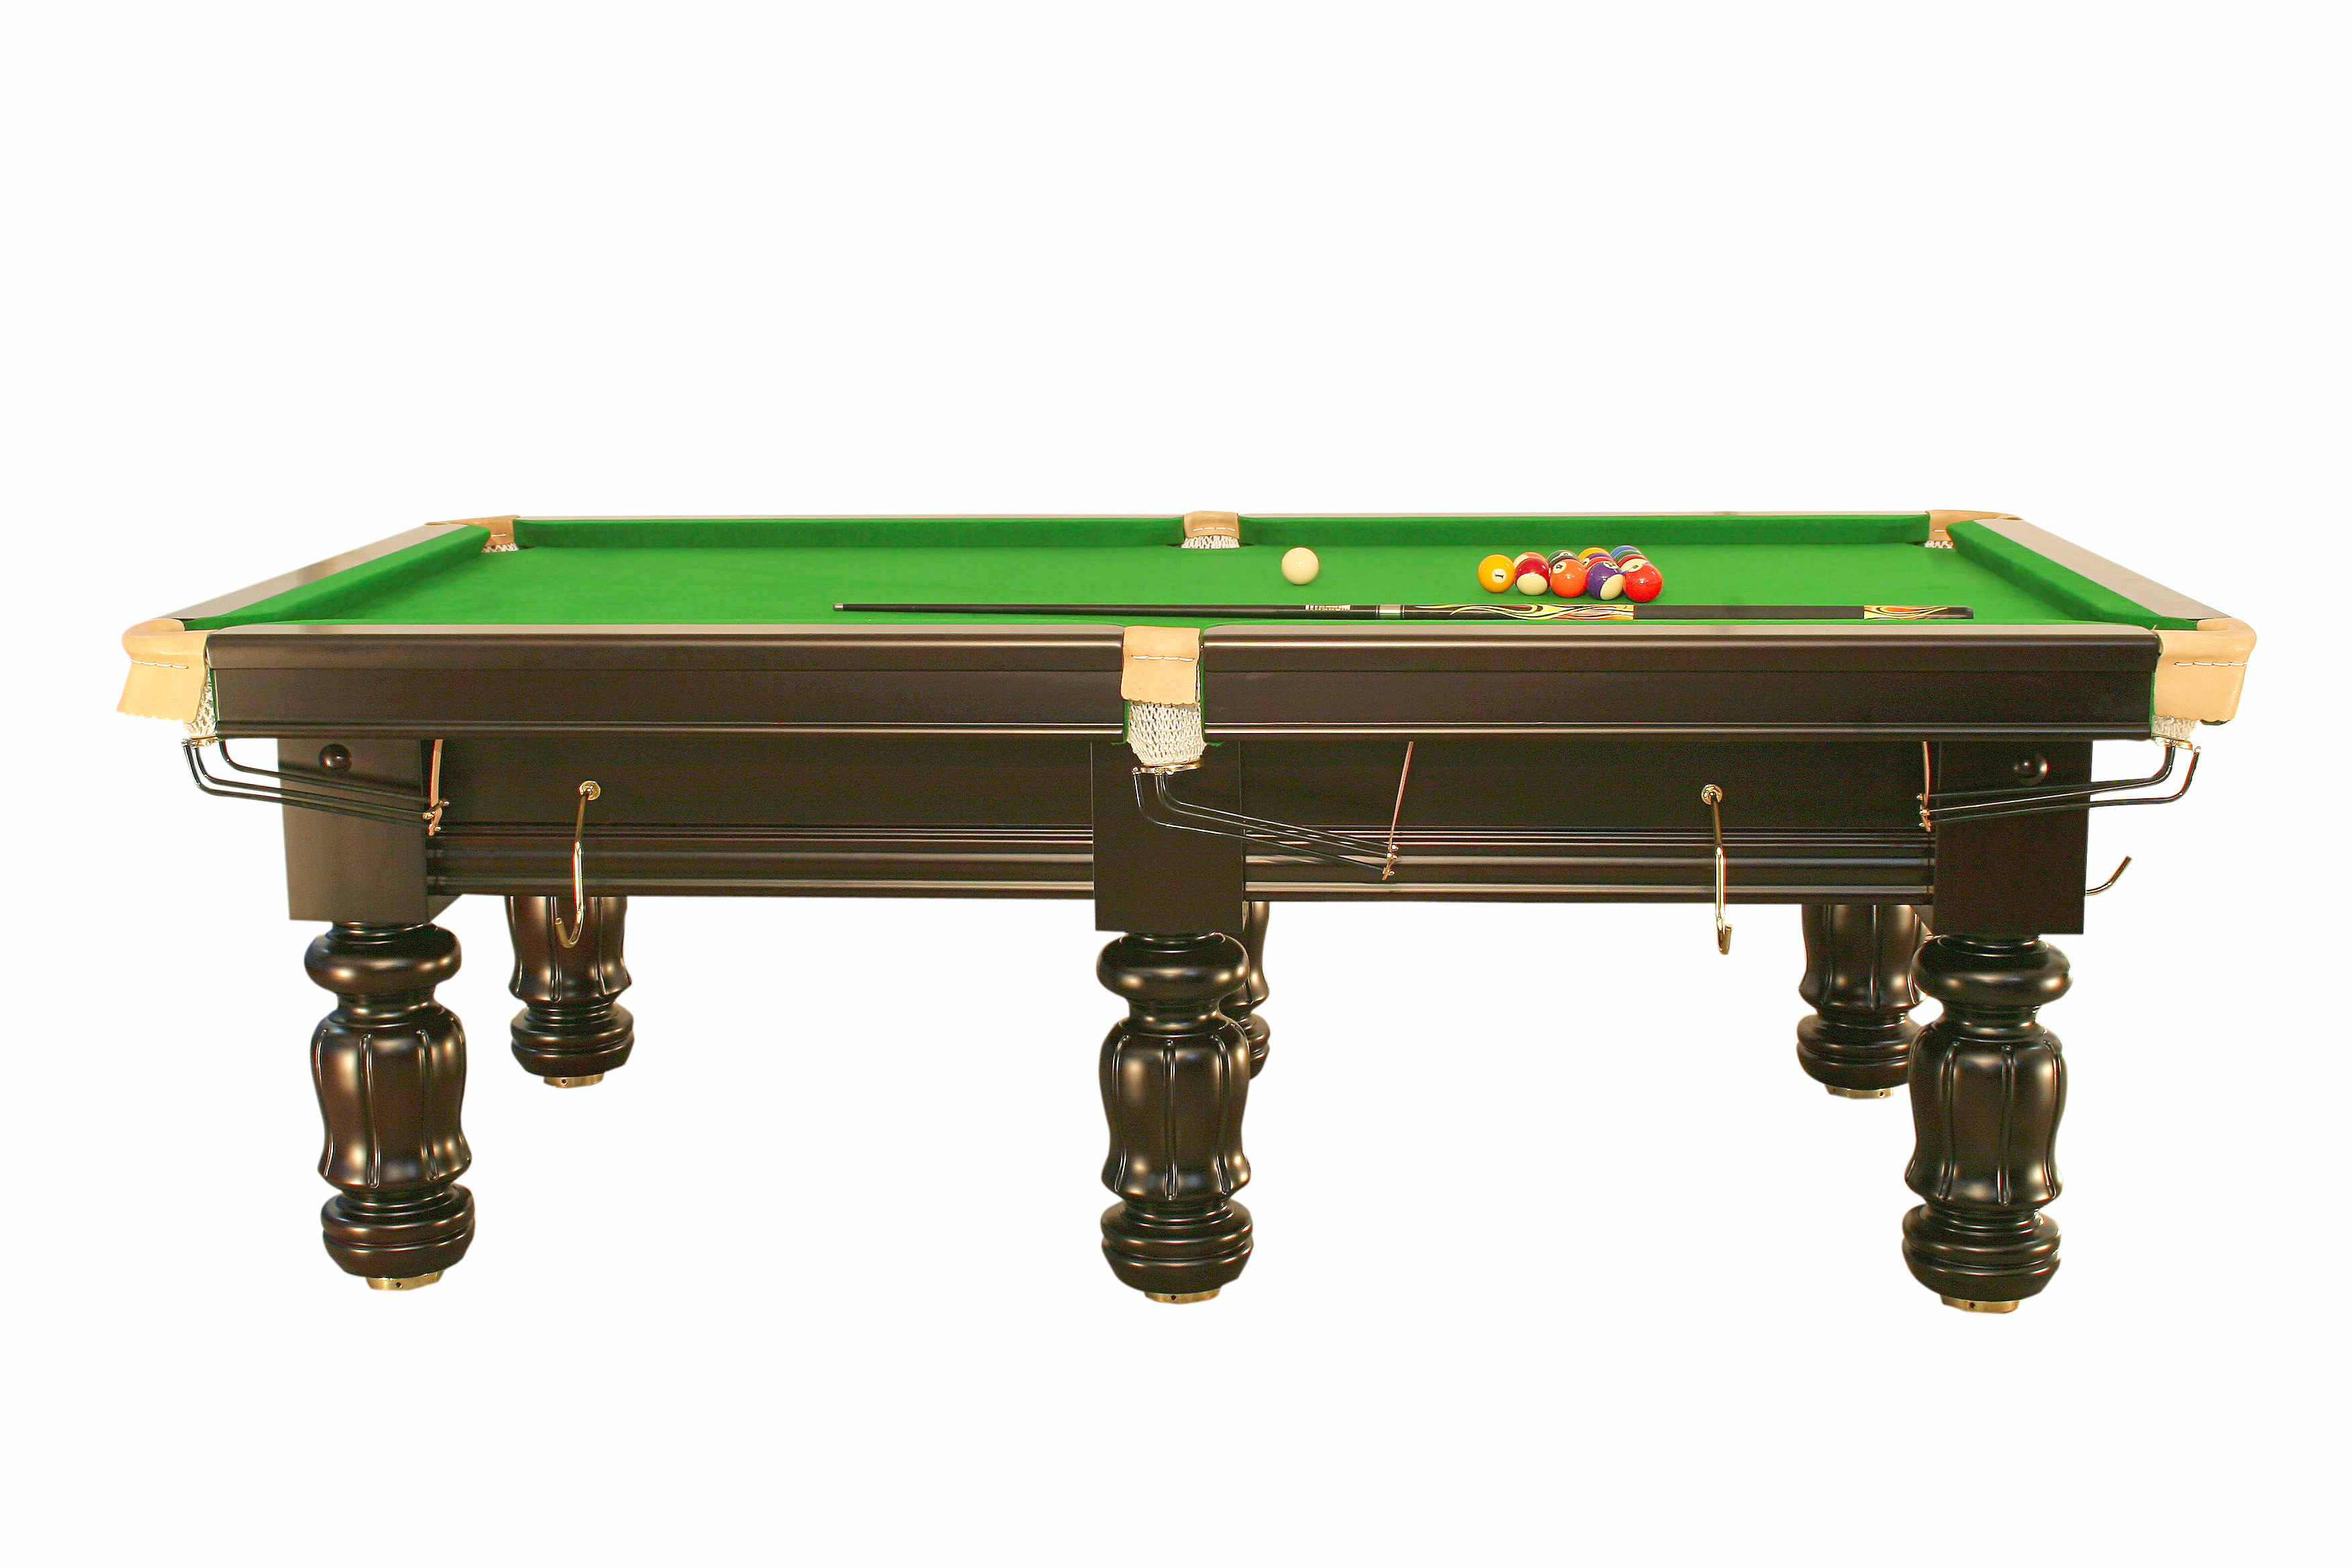 8 Feet x 4 Feet Regular Pool Table.JPG